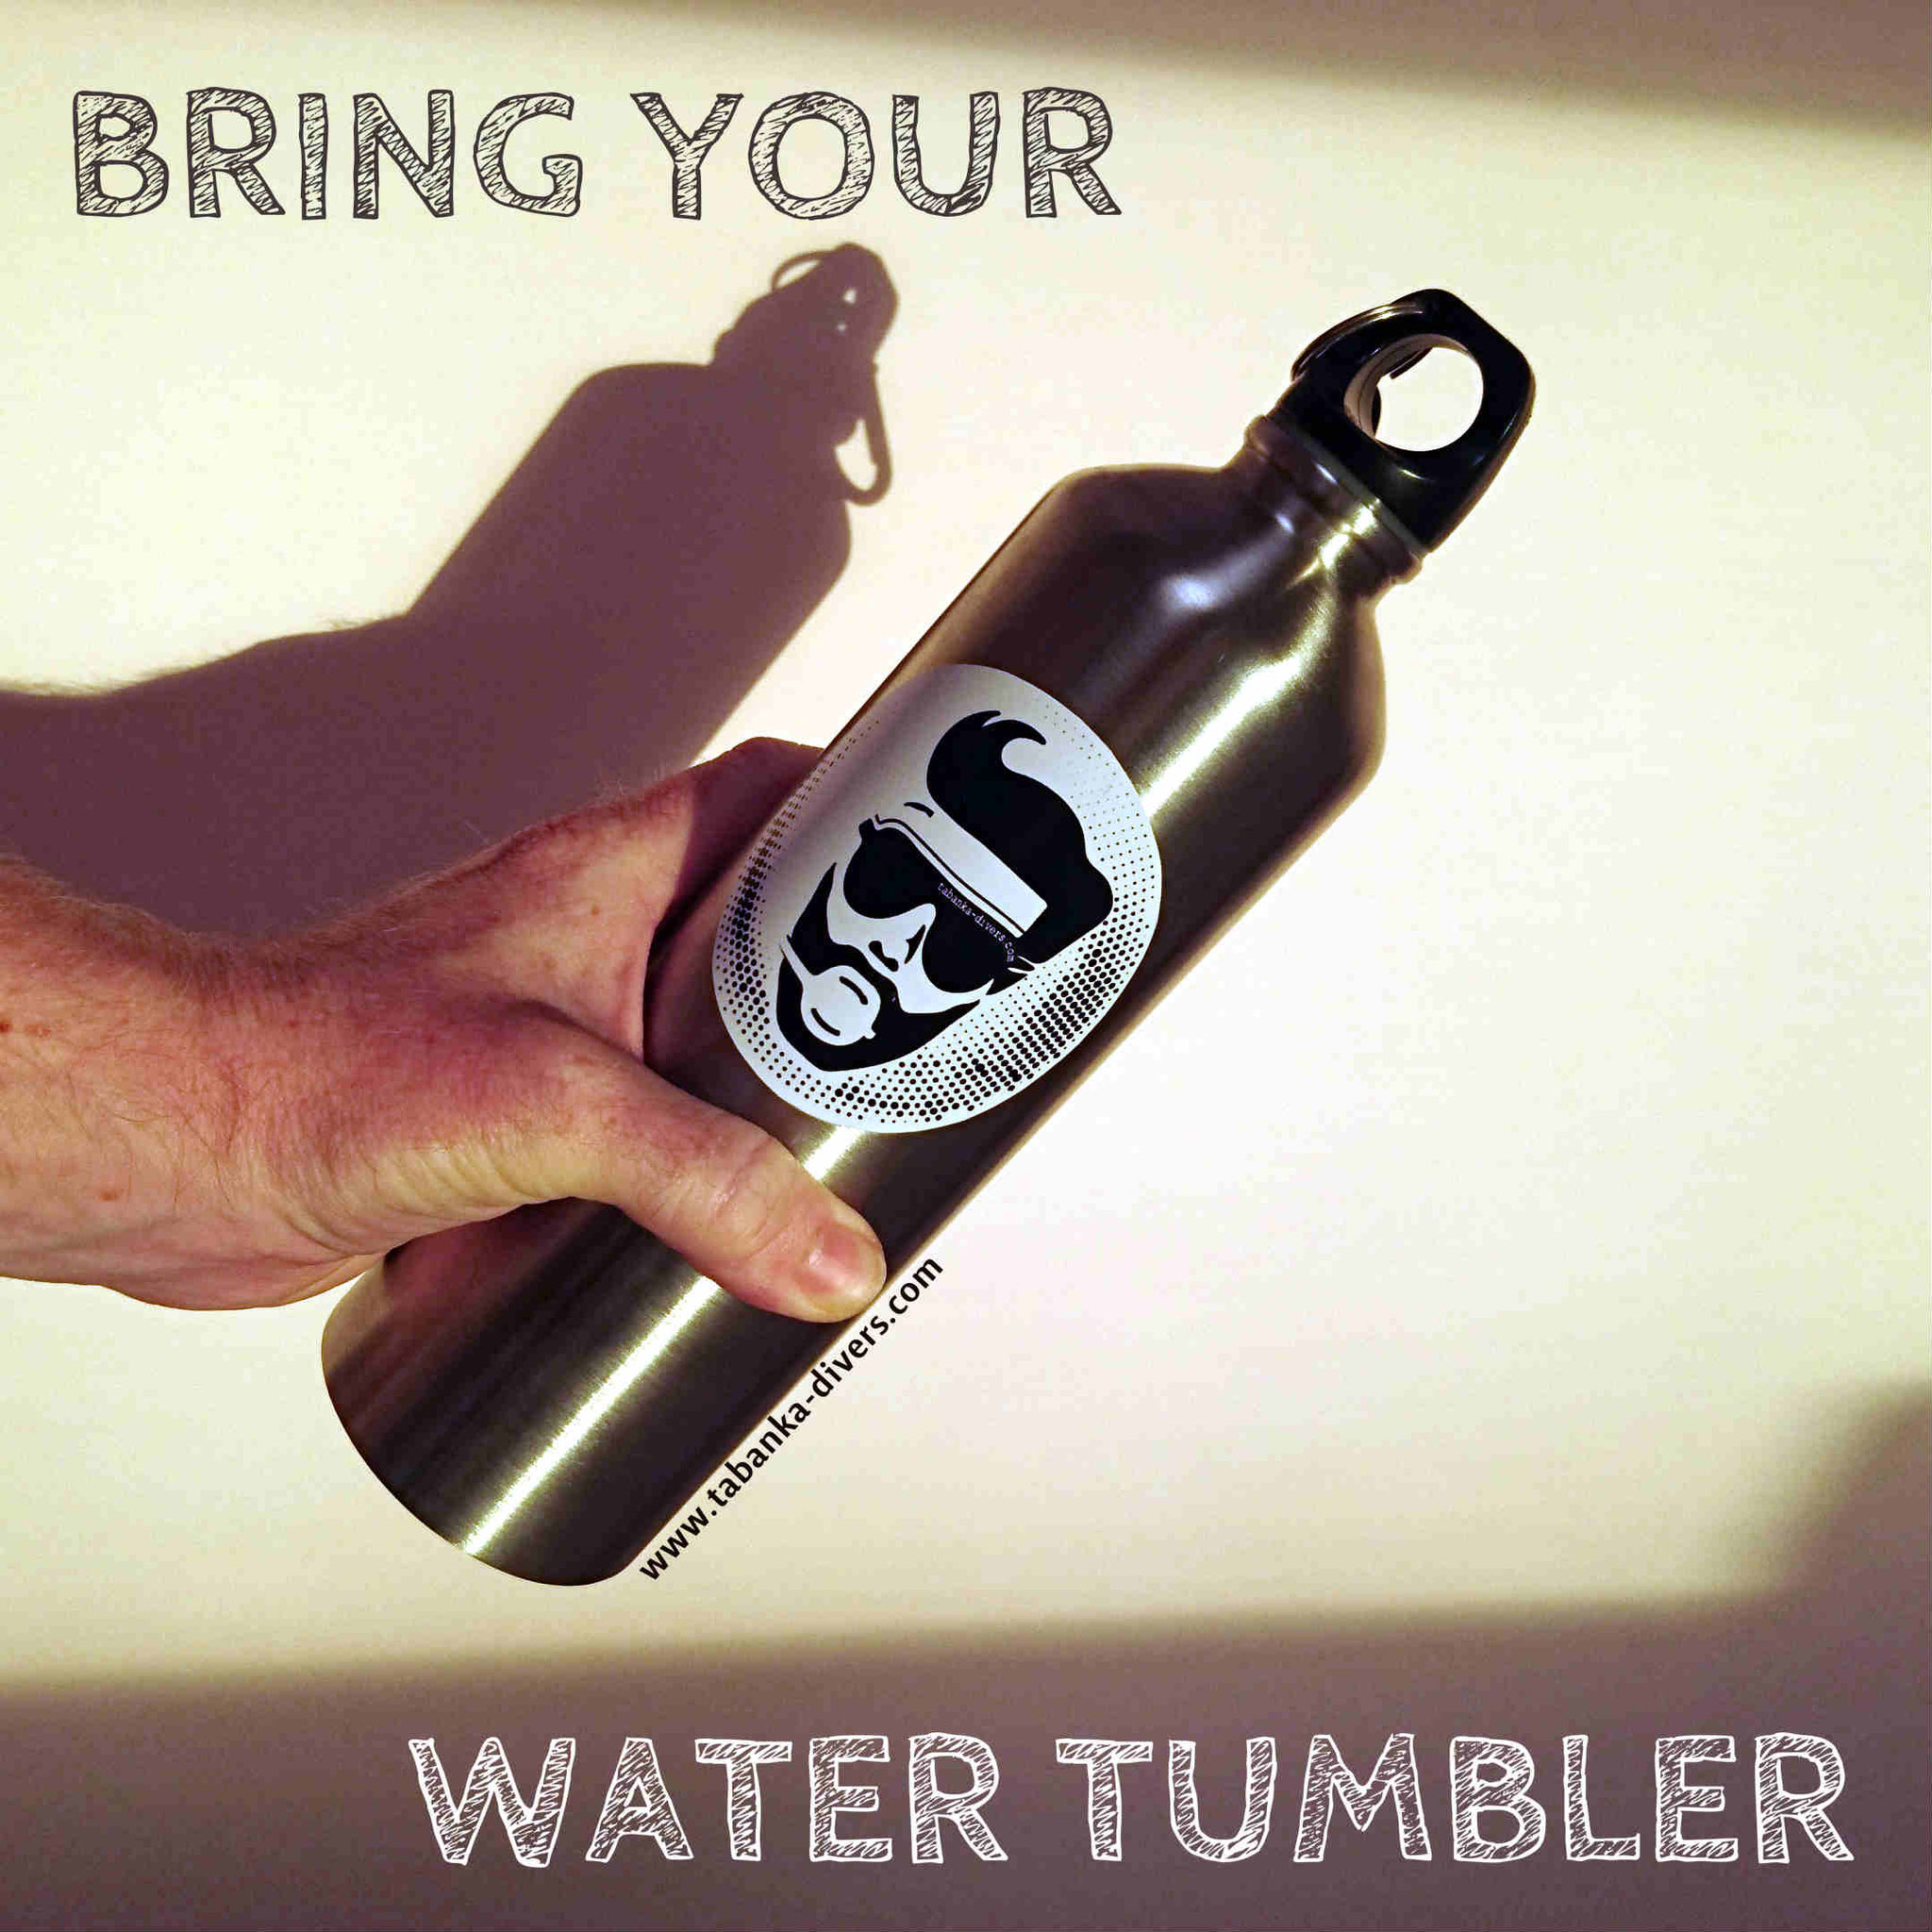 Avoid plastic. Free water refill at Tabanka Divers.